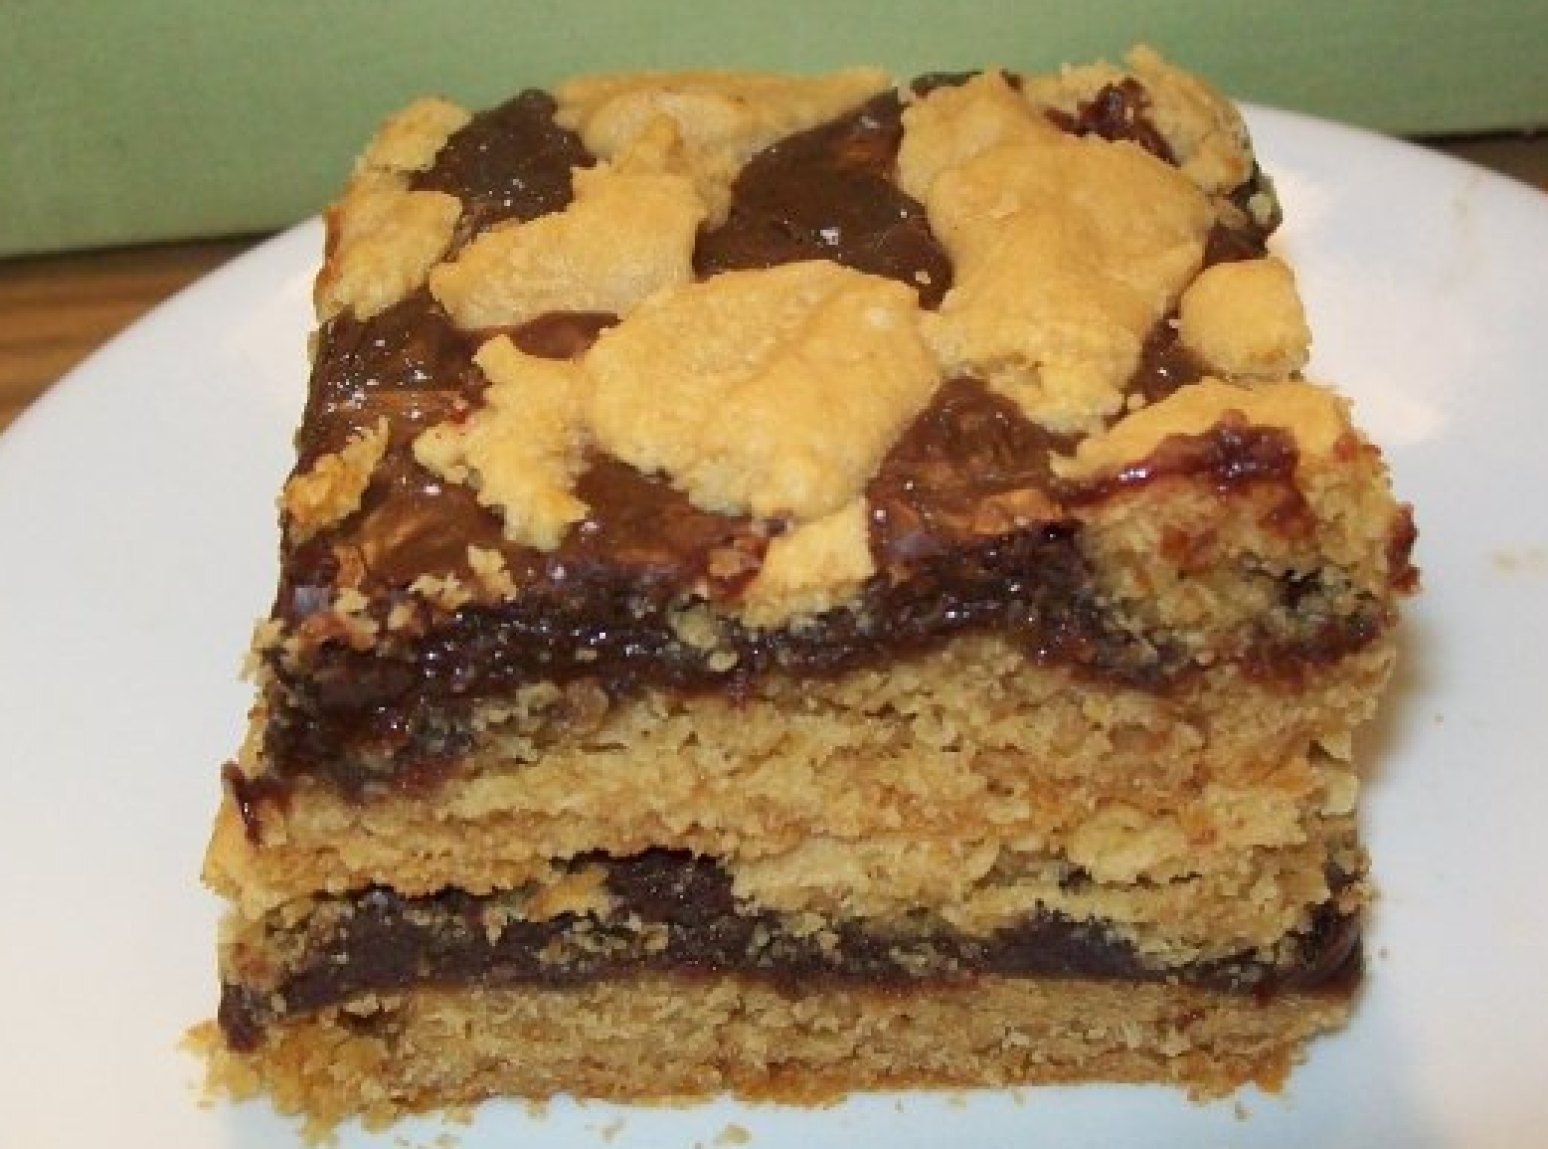 Peanut Butter Fudgy Brownies